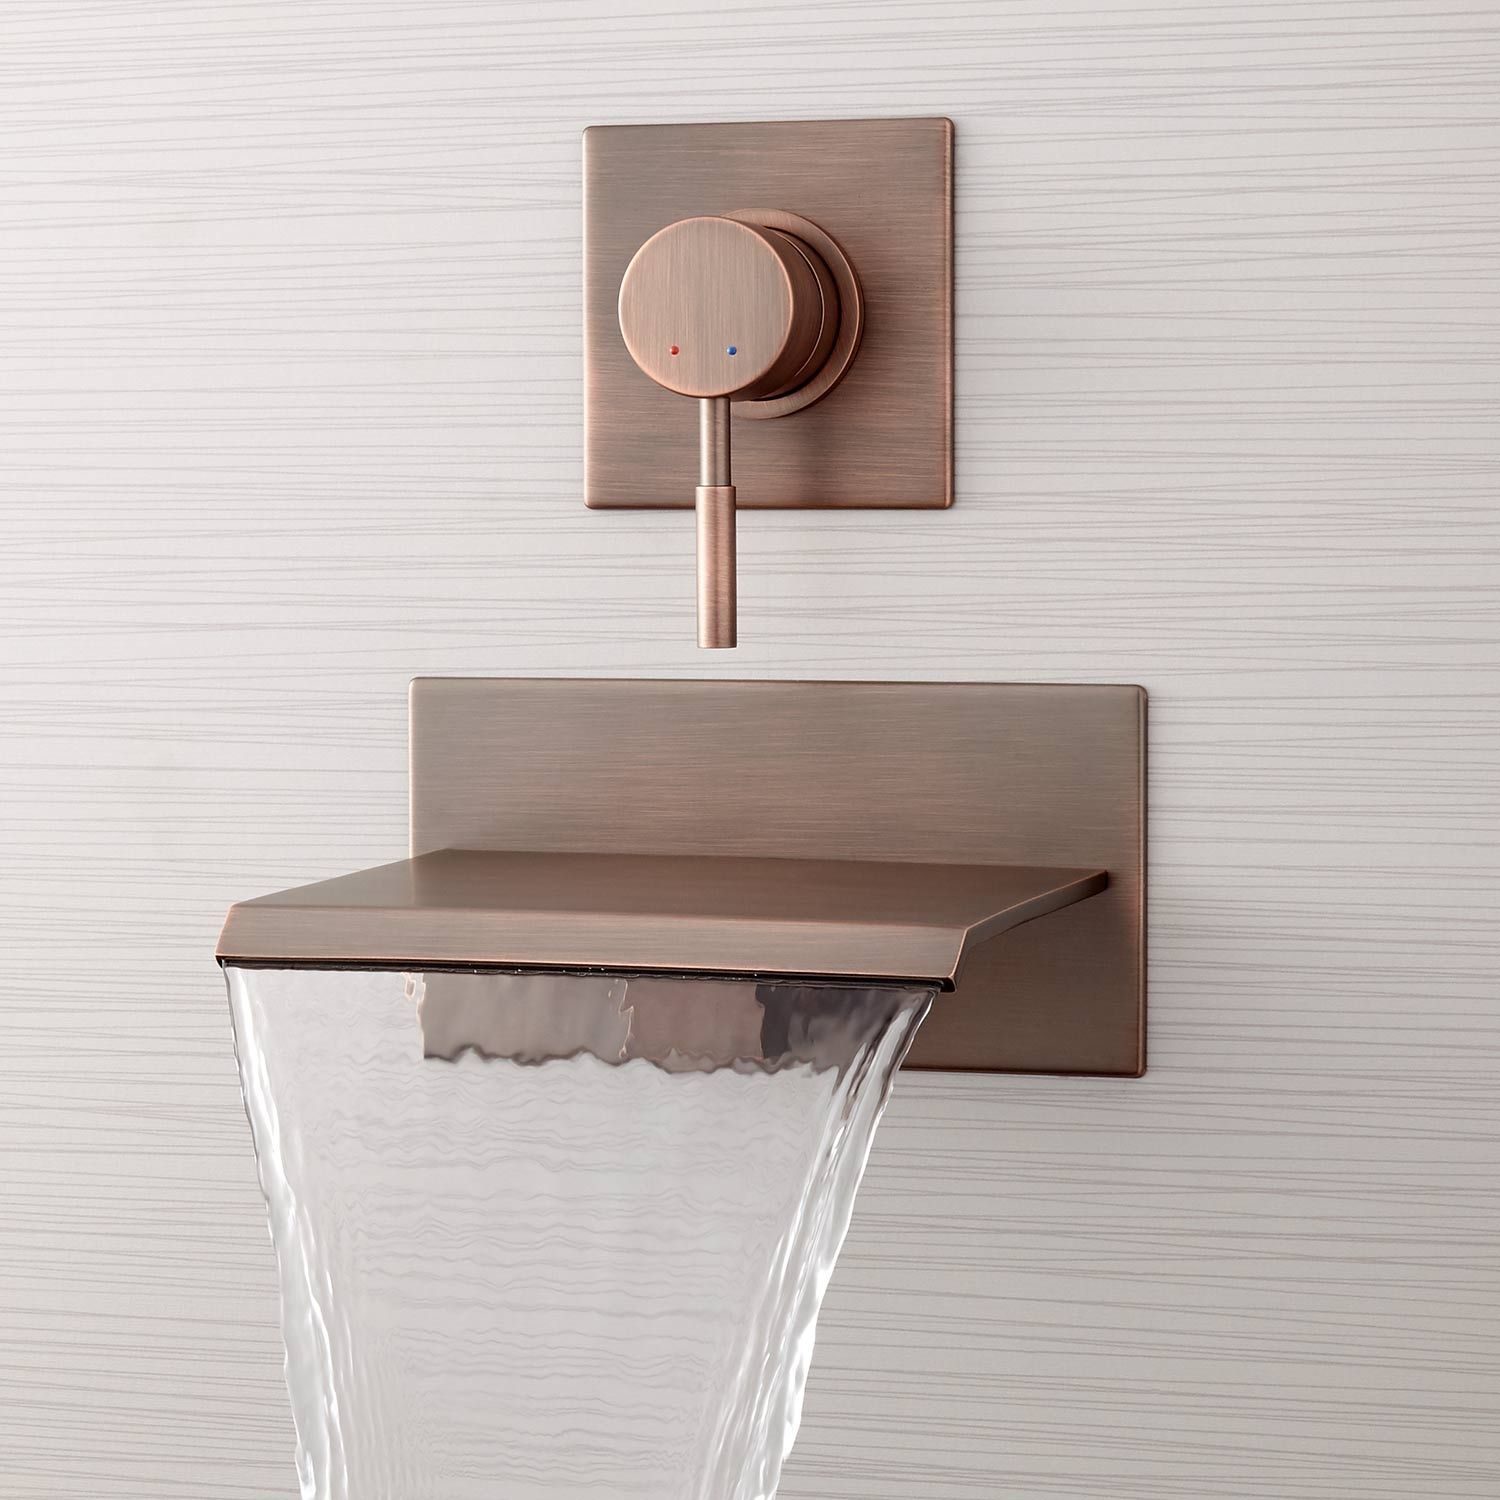 Reston Wall-Mount Waterfall Tub Faucet | Waterfall faucet, Faucet ...